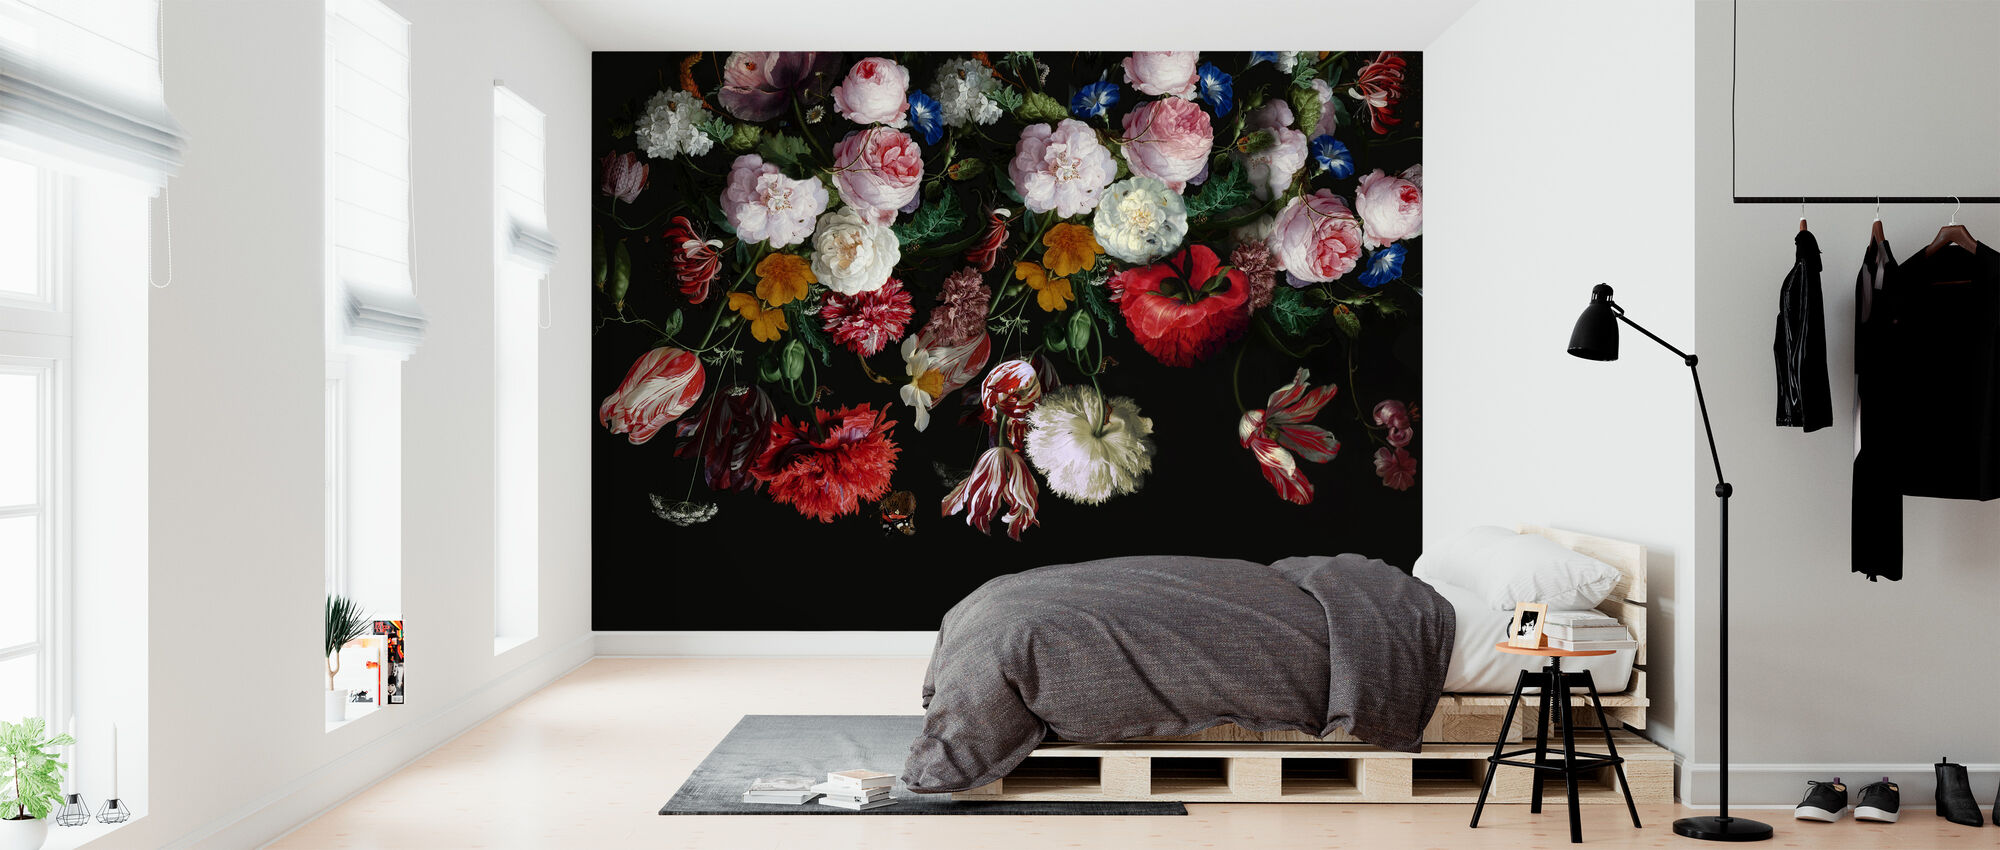 Colourful Flowers on Black Background - Wallpaper - Bedroom